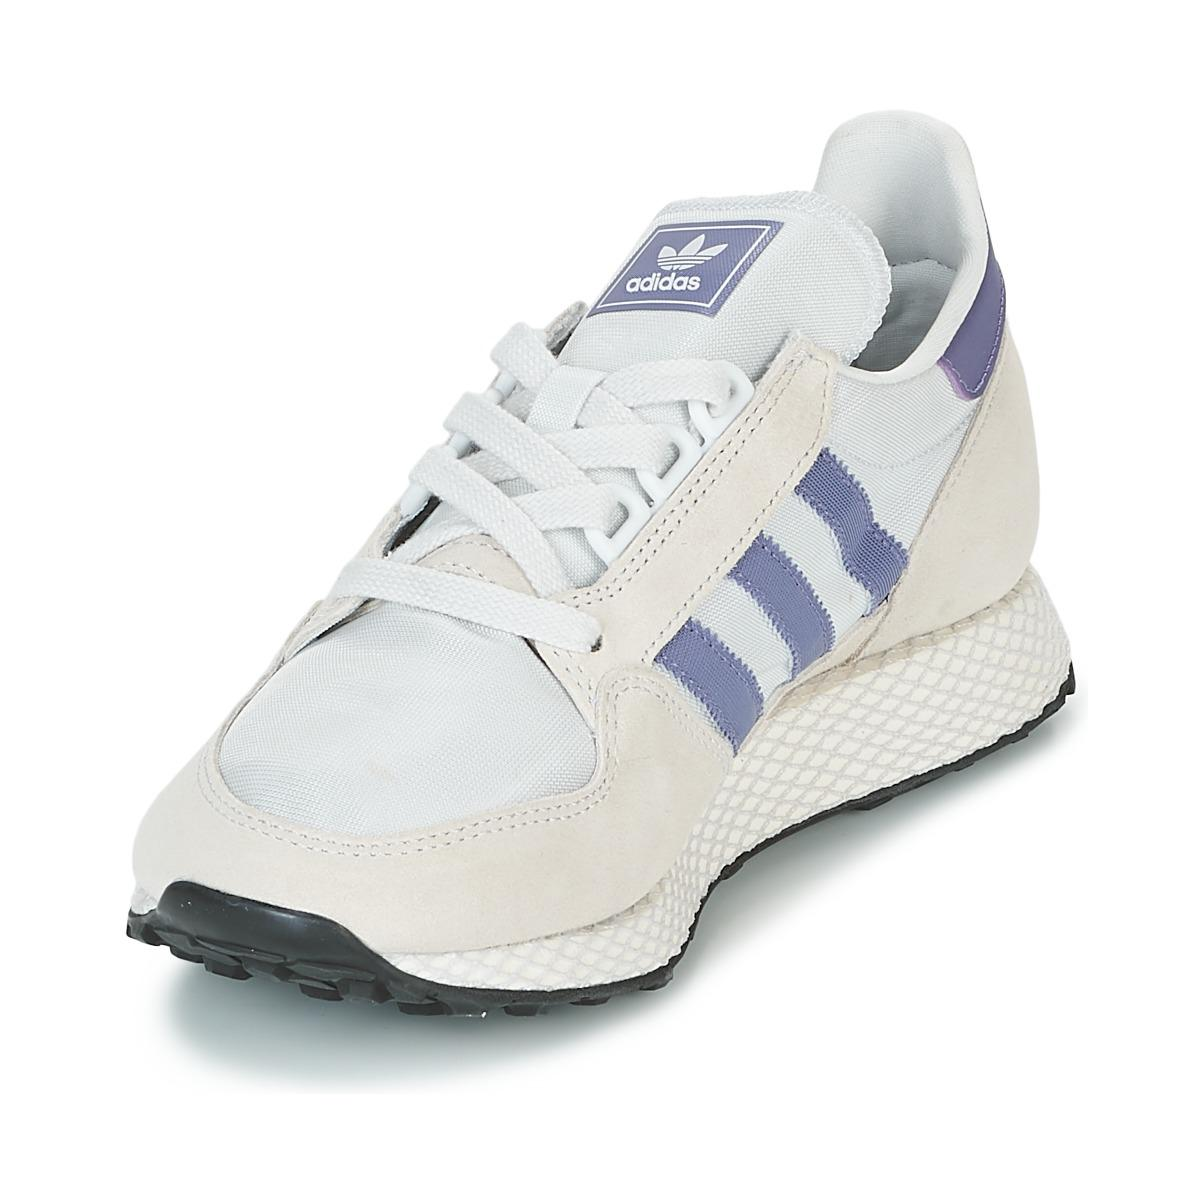 adidas Oregon W Women's Shoes (trainers) In Beige in Natural